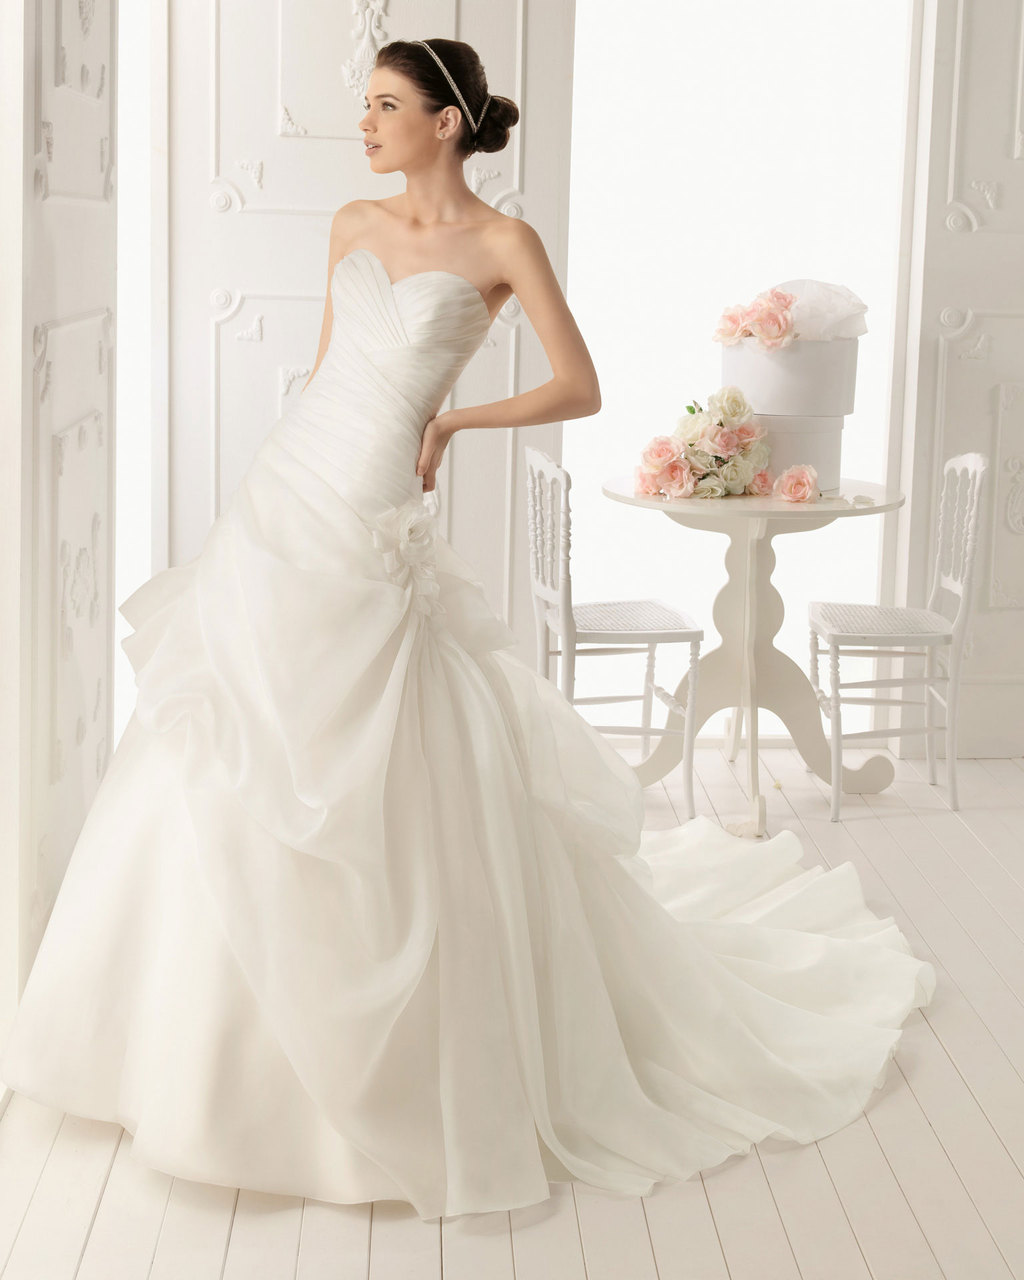 2013-wedding-dress-aire-barcelona-bridal-gowns-rocio.full